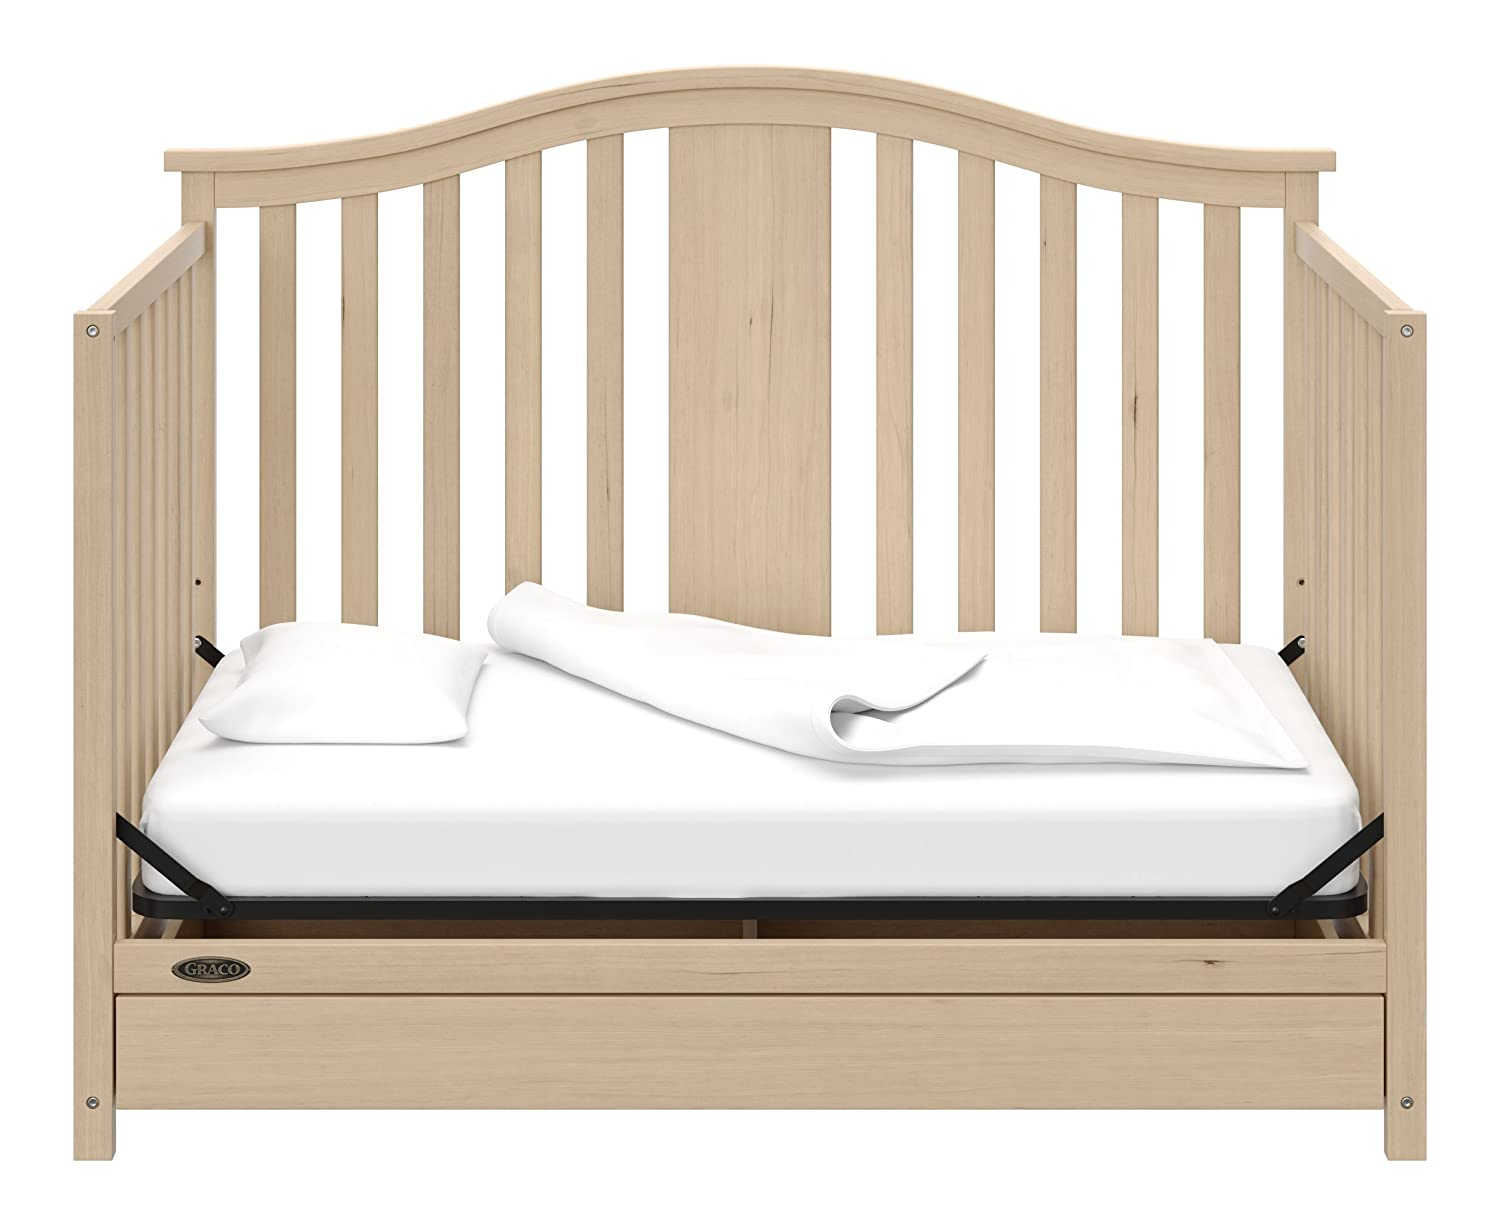 Mattress Not Included Three Position Adjustable Height Mattress Easily Converts to Toddler Bed Day Bed or Full Bed Assembly Required Graco Solano 4 in 1 Convertible Crib with Drawer Whitewash